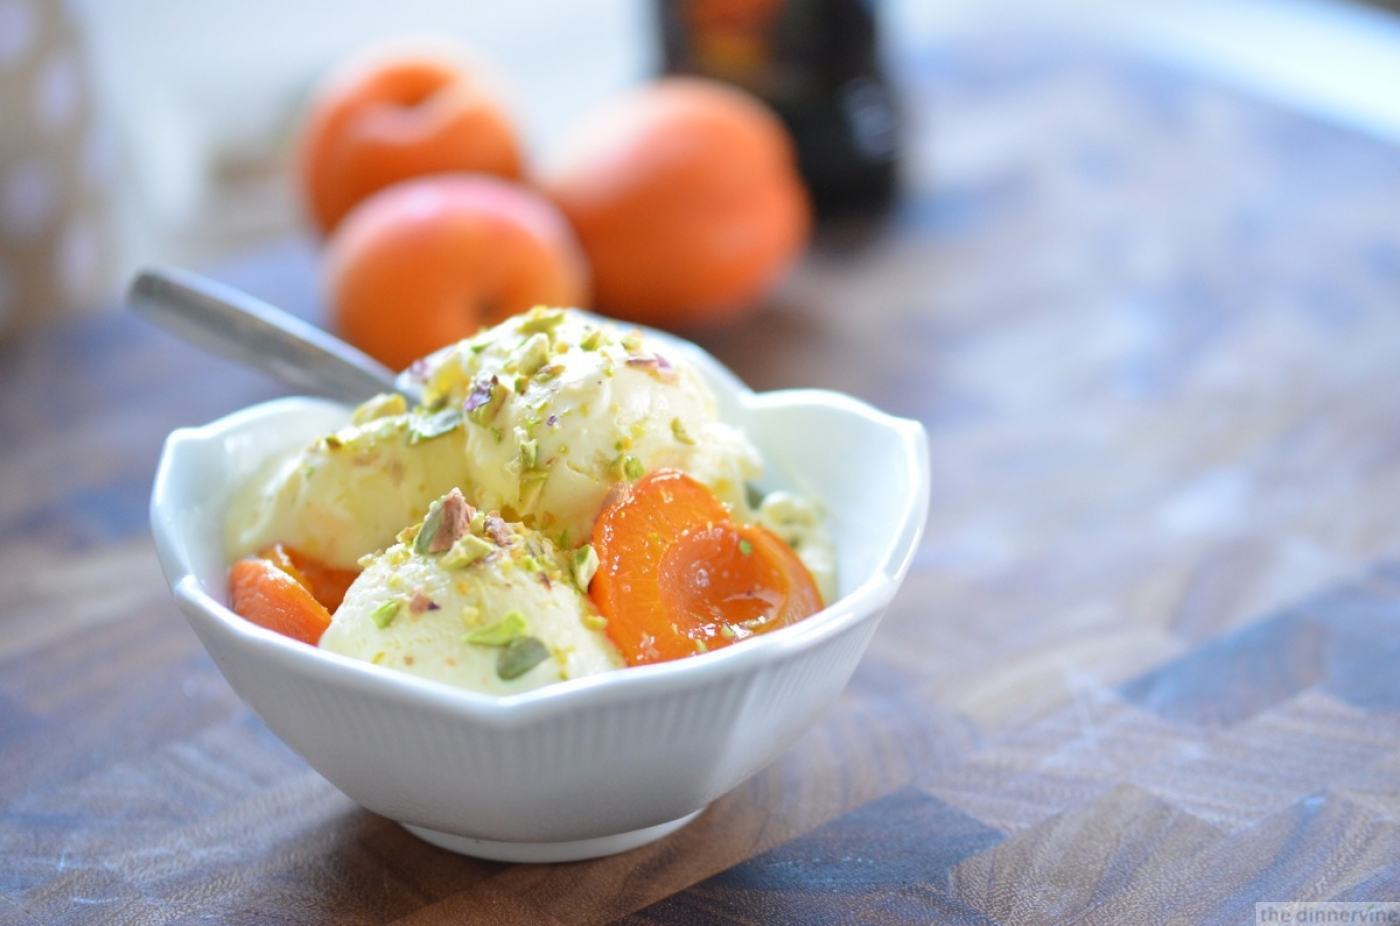 Sweet Olive Oil Ice Cream & Roasted Apricots w/ Salted Pistachios